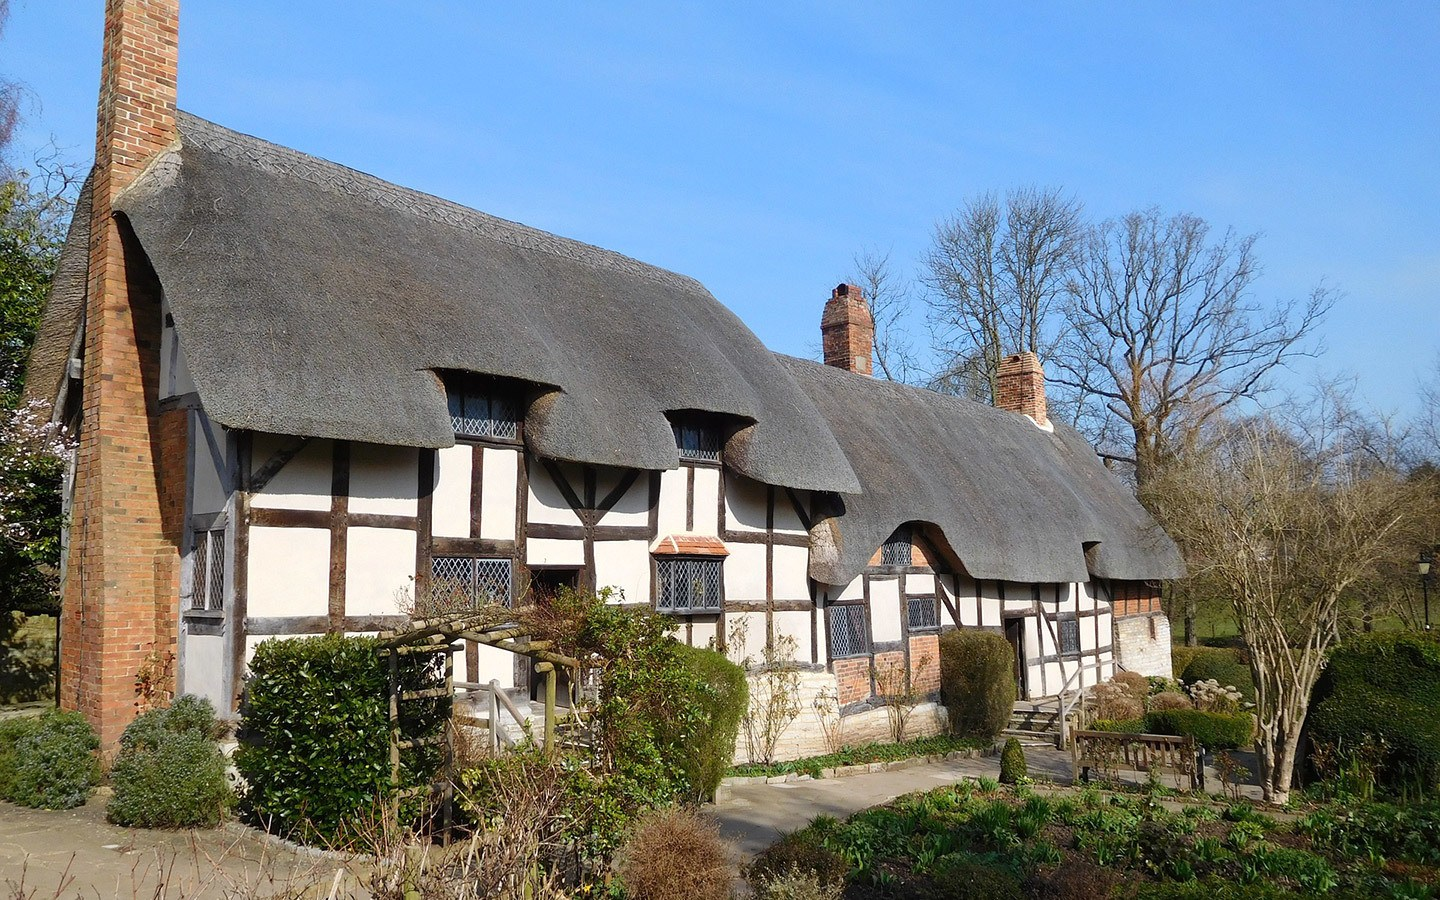 Anne Hathaway's Cottage in Stratford-upon-Avon [photo credit Canva]